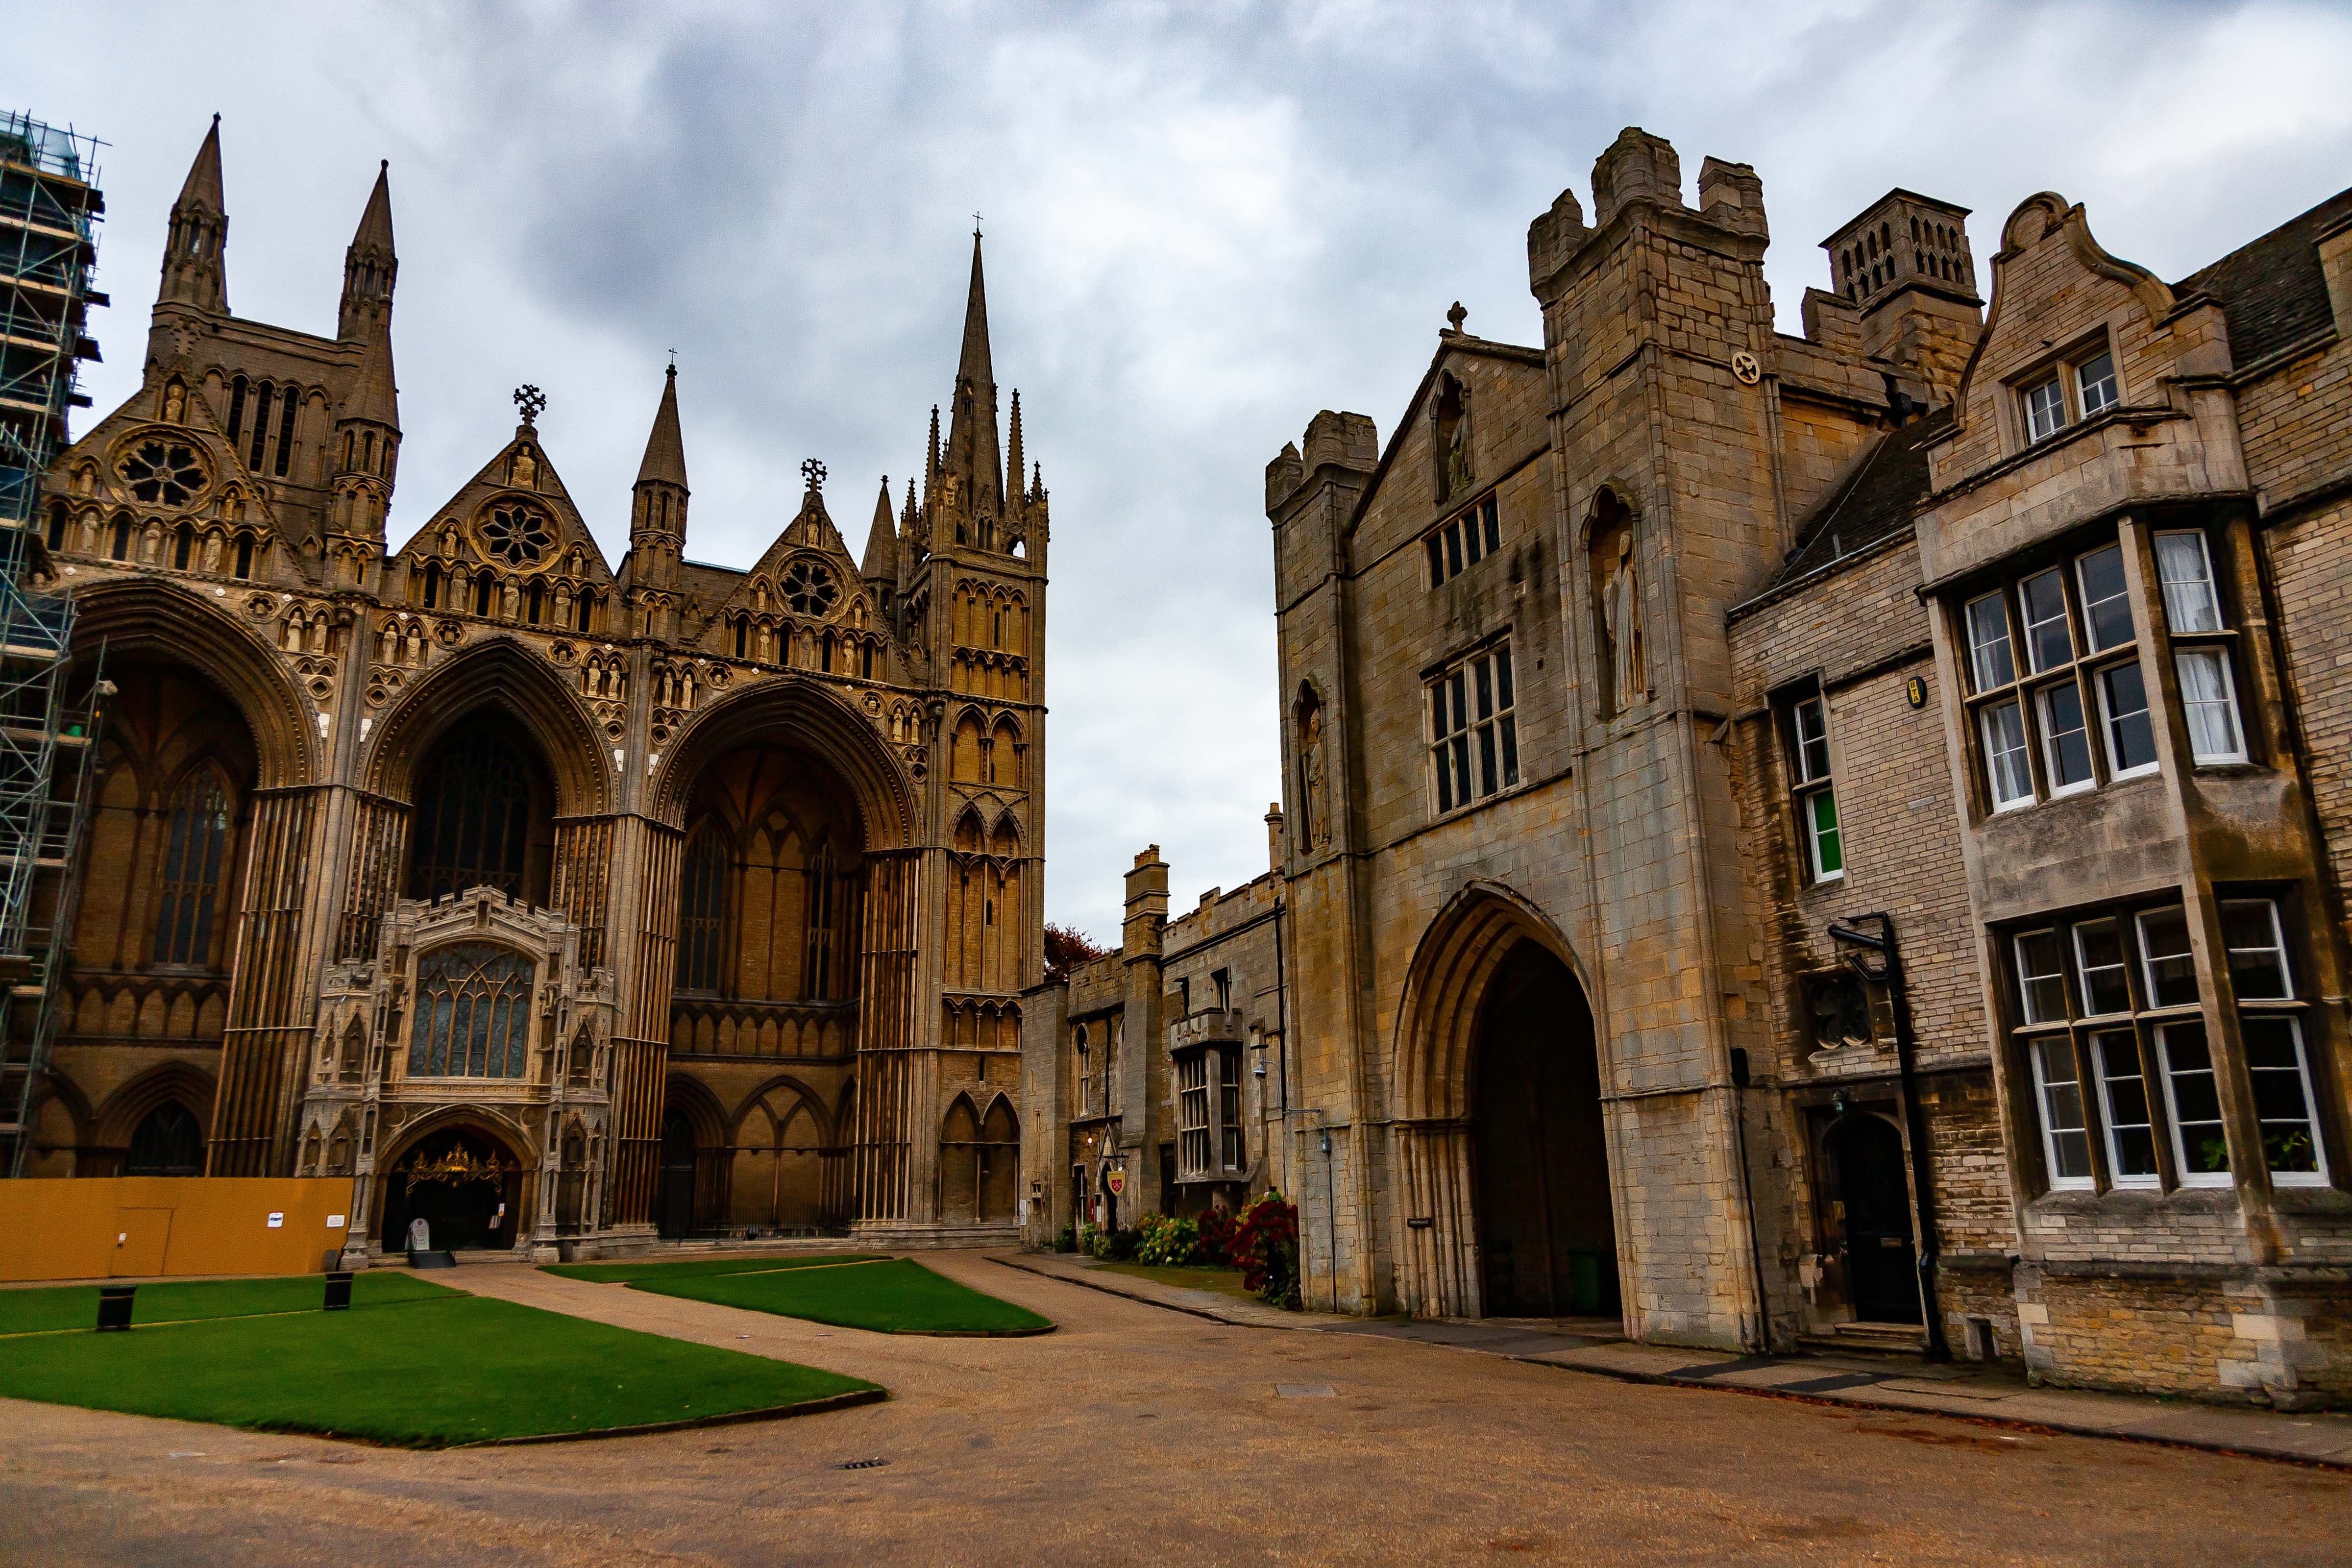 UK, Peterborough Prov, Cathedral Grounds, 2009, IMG 7468